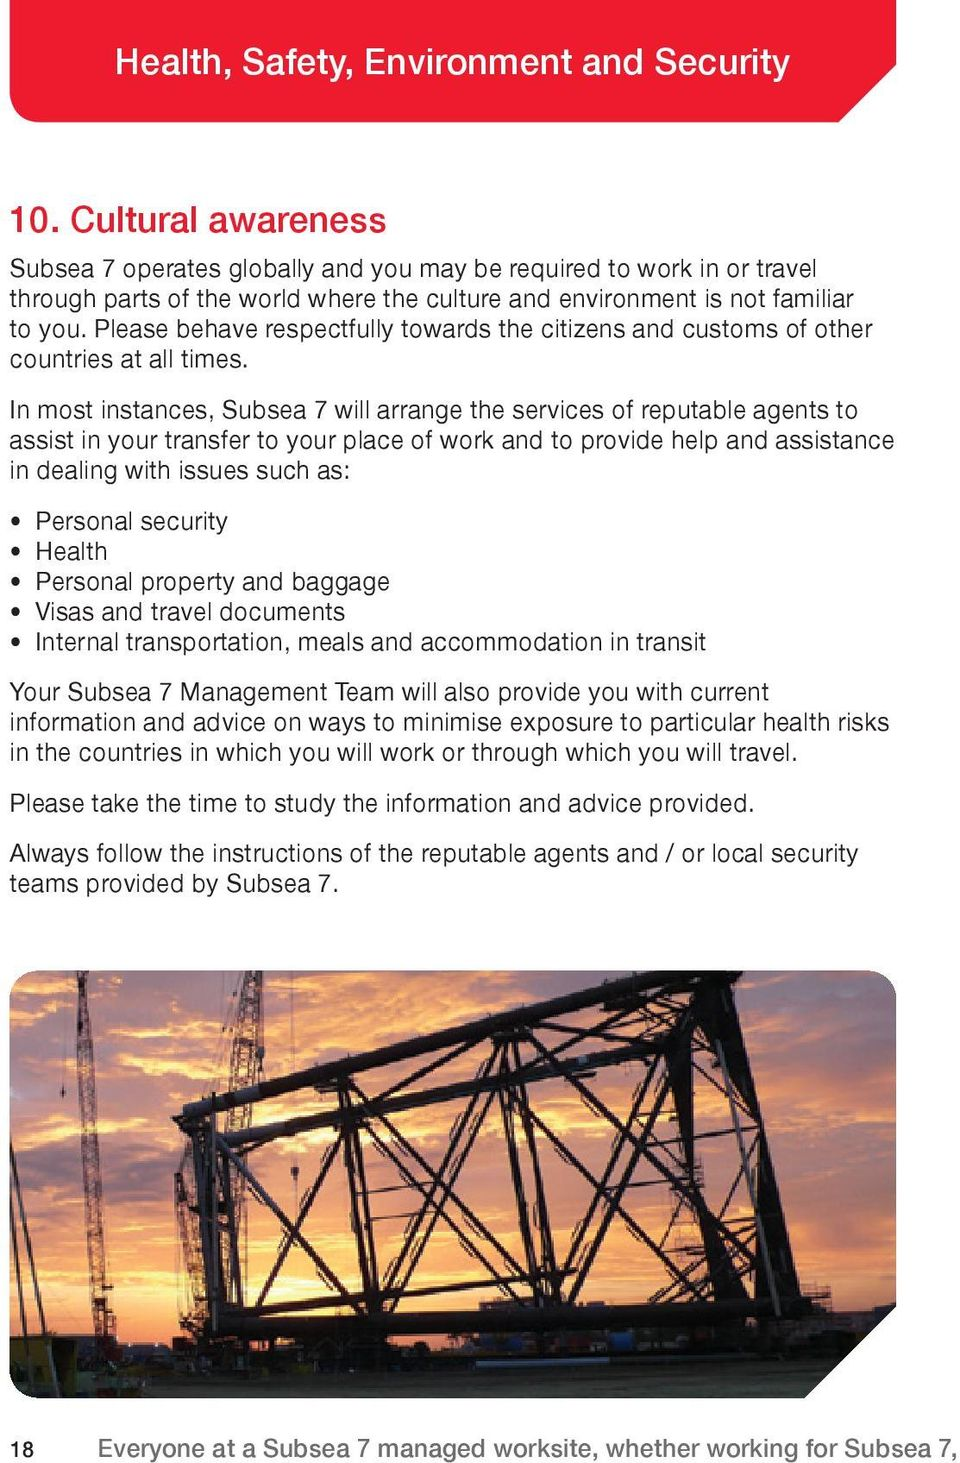 In most instances, Subsea 7 will arrange the services of reputable agents to assist in your transfer to your place of work and to provide help and assistance in dealing with issues such as: Personal